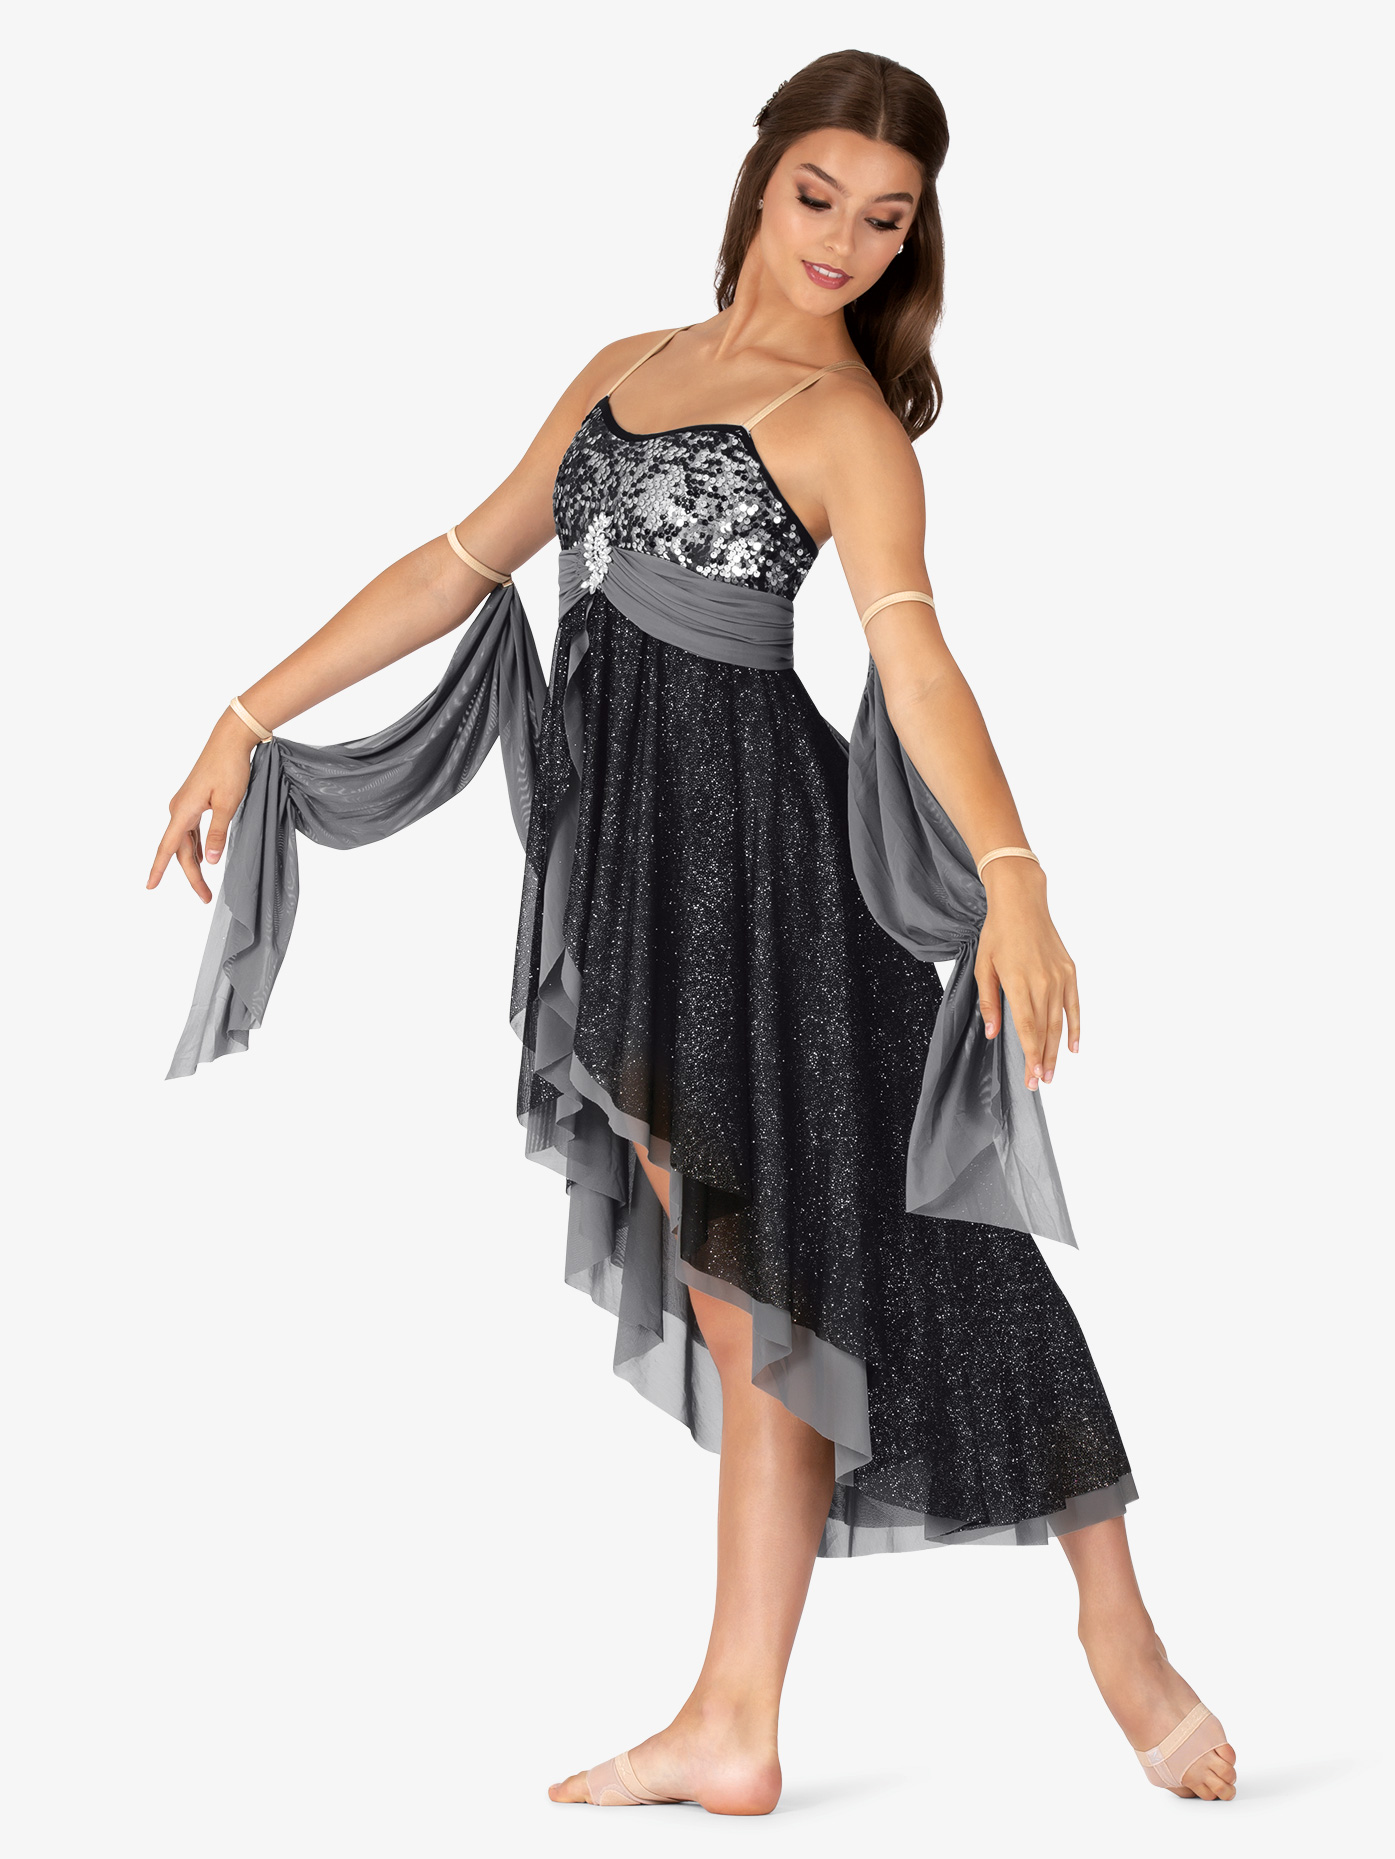 Elisse by Double Platinum Womens Glitter Mesh High-Low Camisole Lyrical Dress N7468